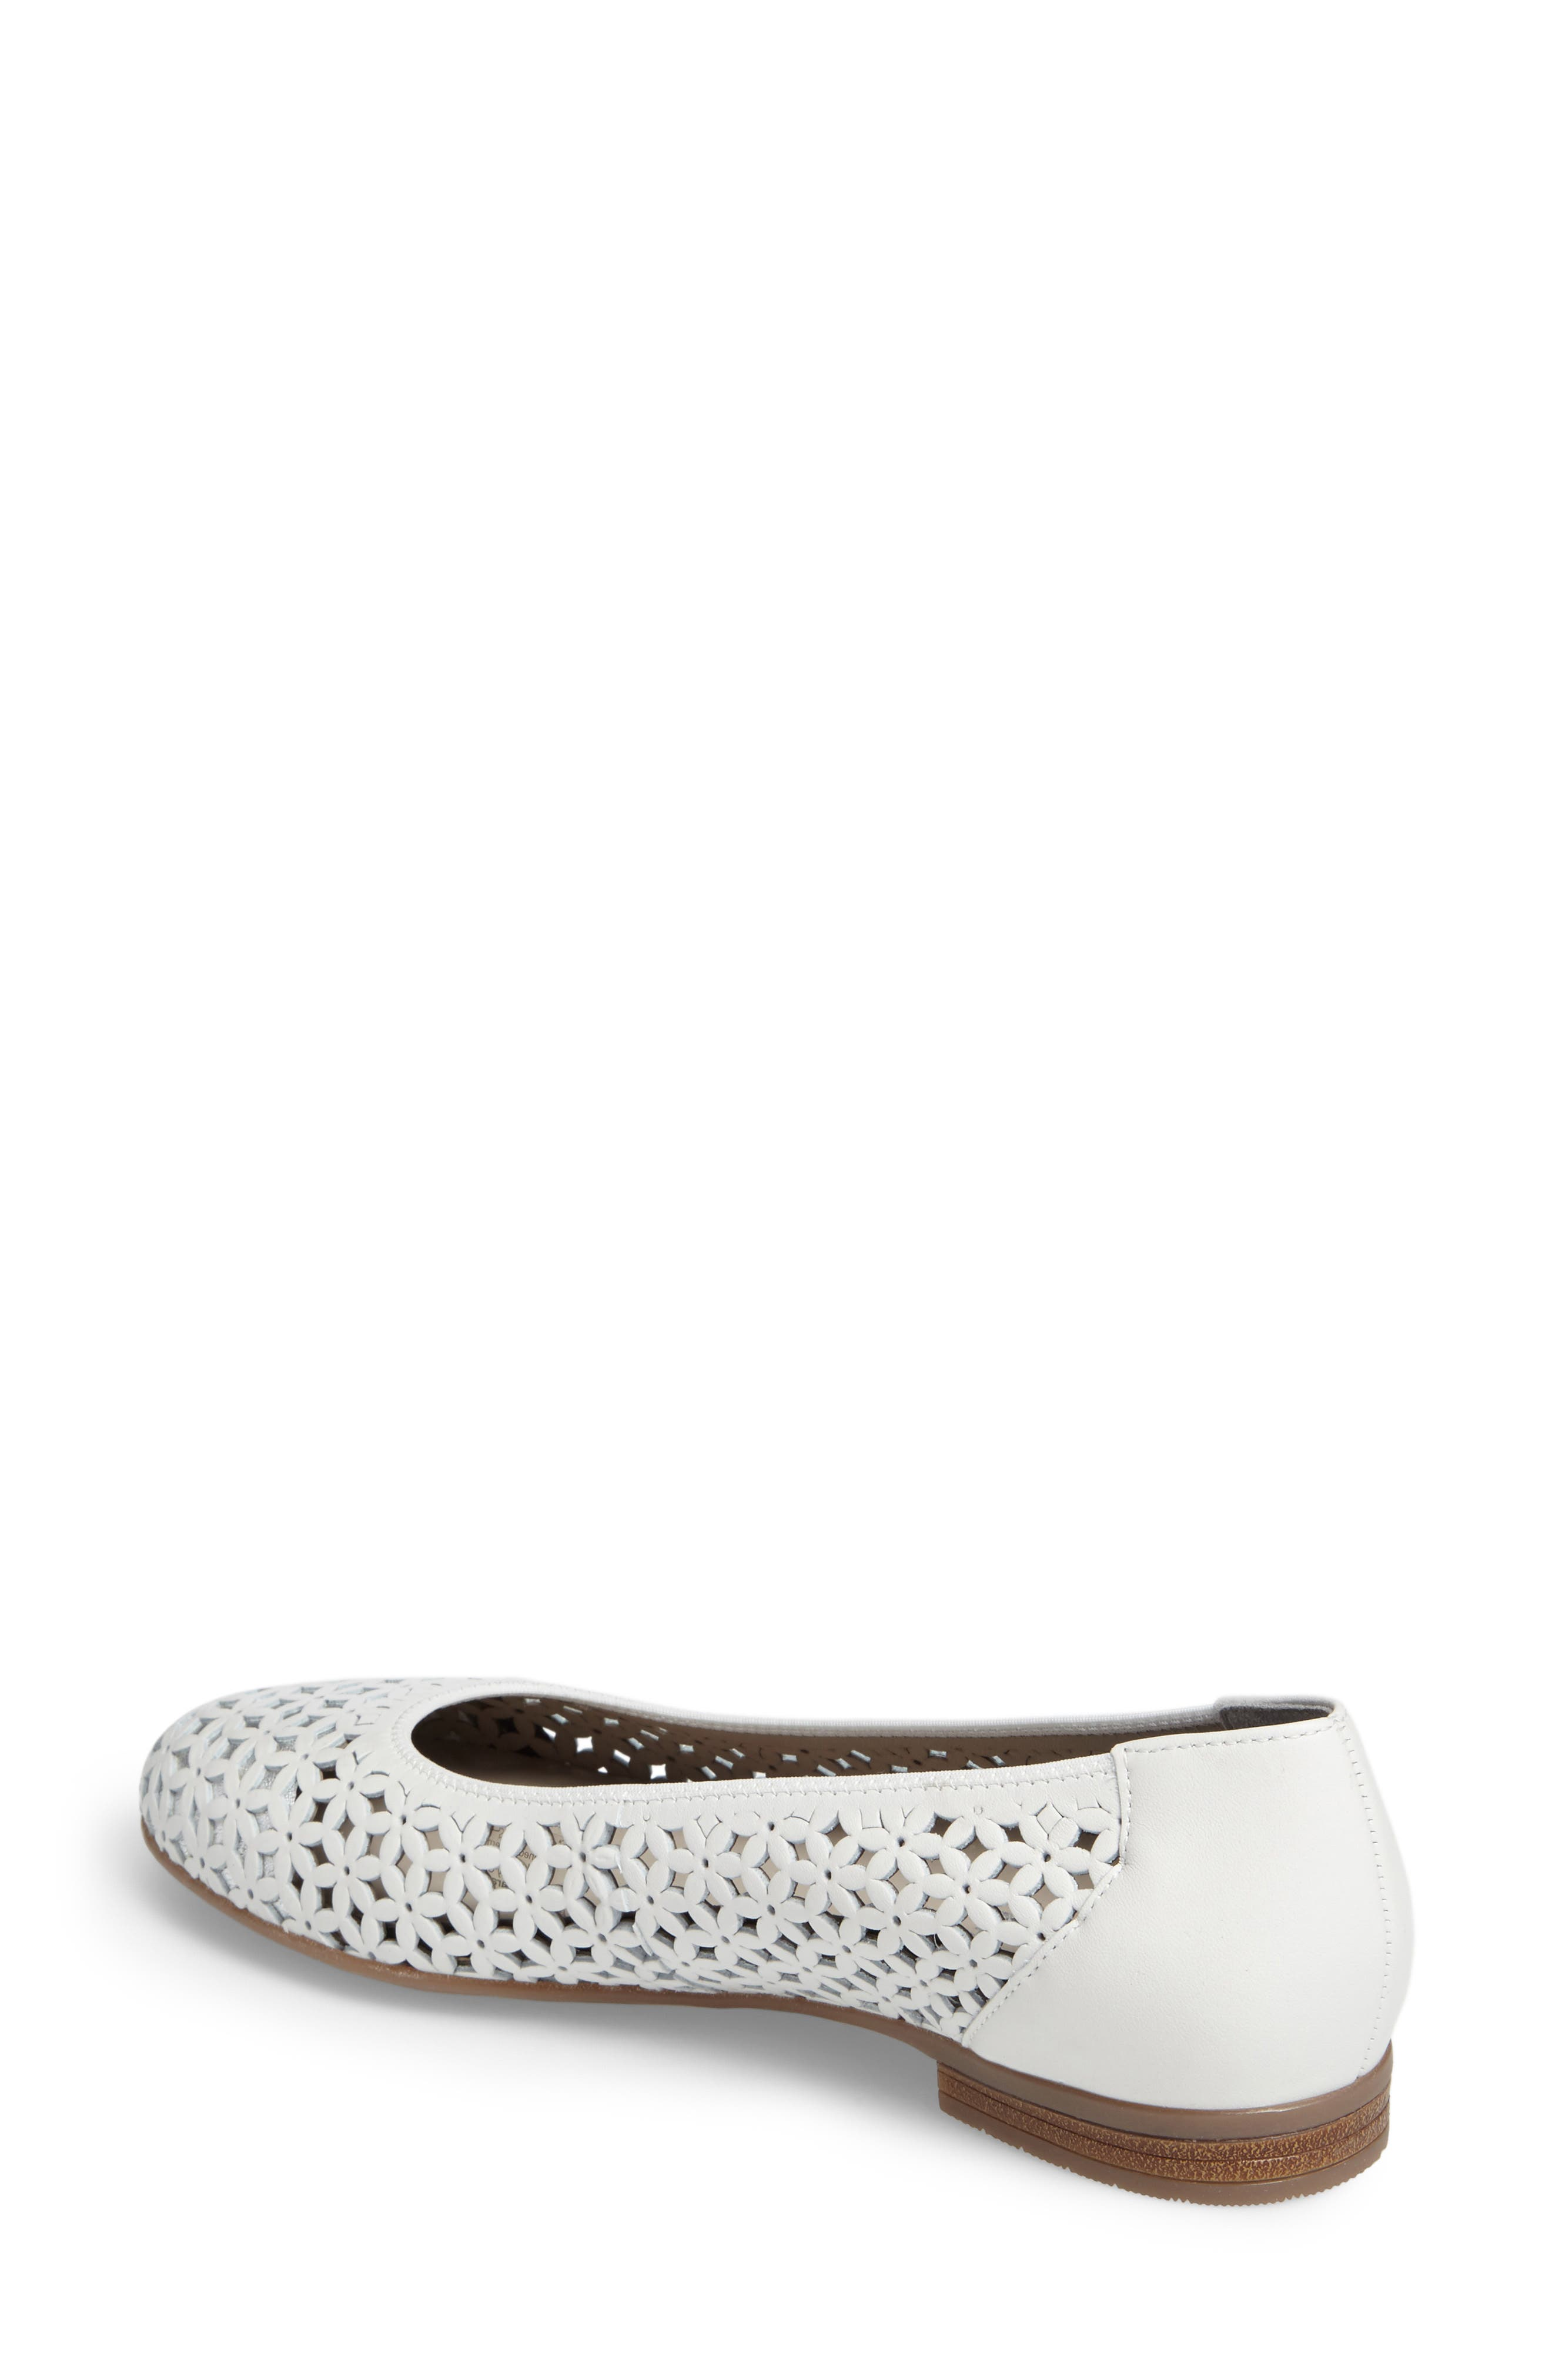 Stephanie Perforated Ballet Flat,                             Alternate thumbnail 2, color,                             White Leather